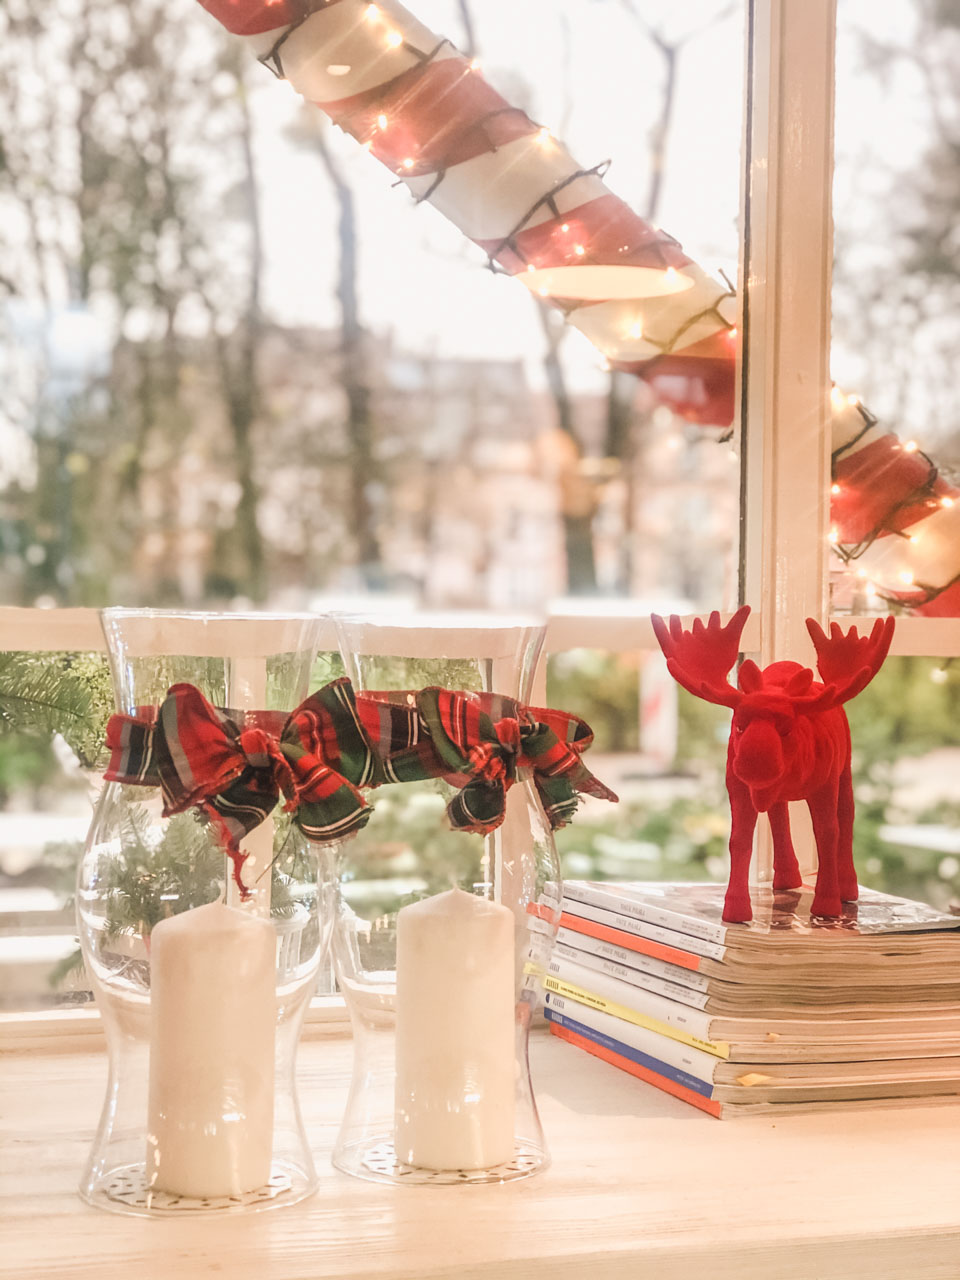 Festive candles and a reindeer figurine on a window sill